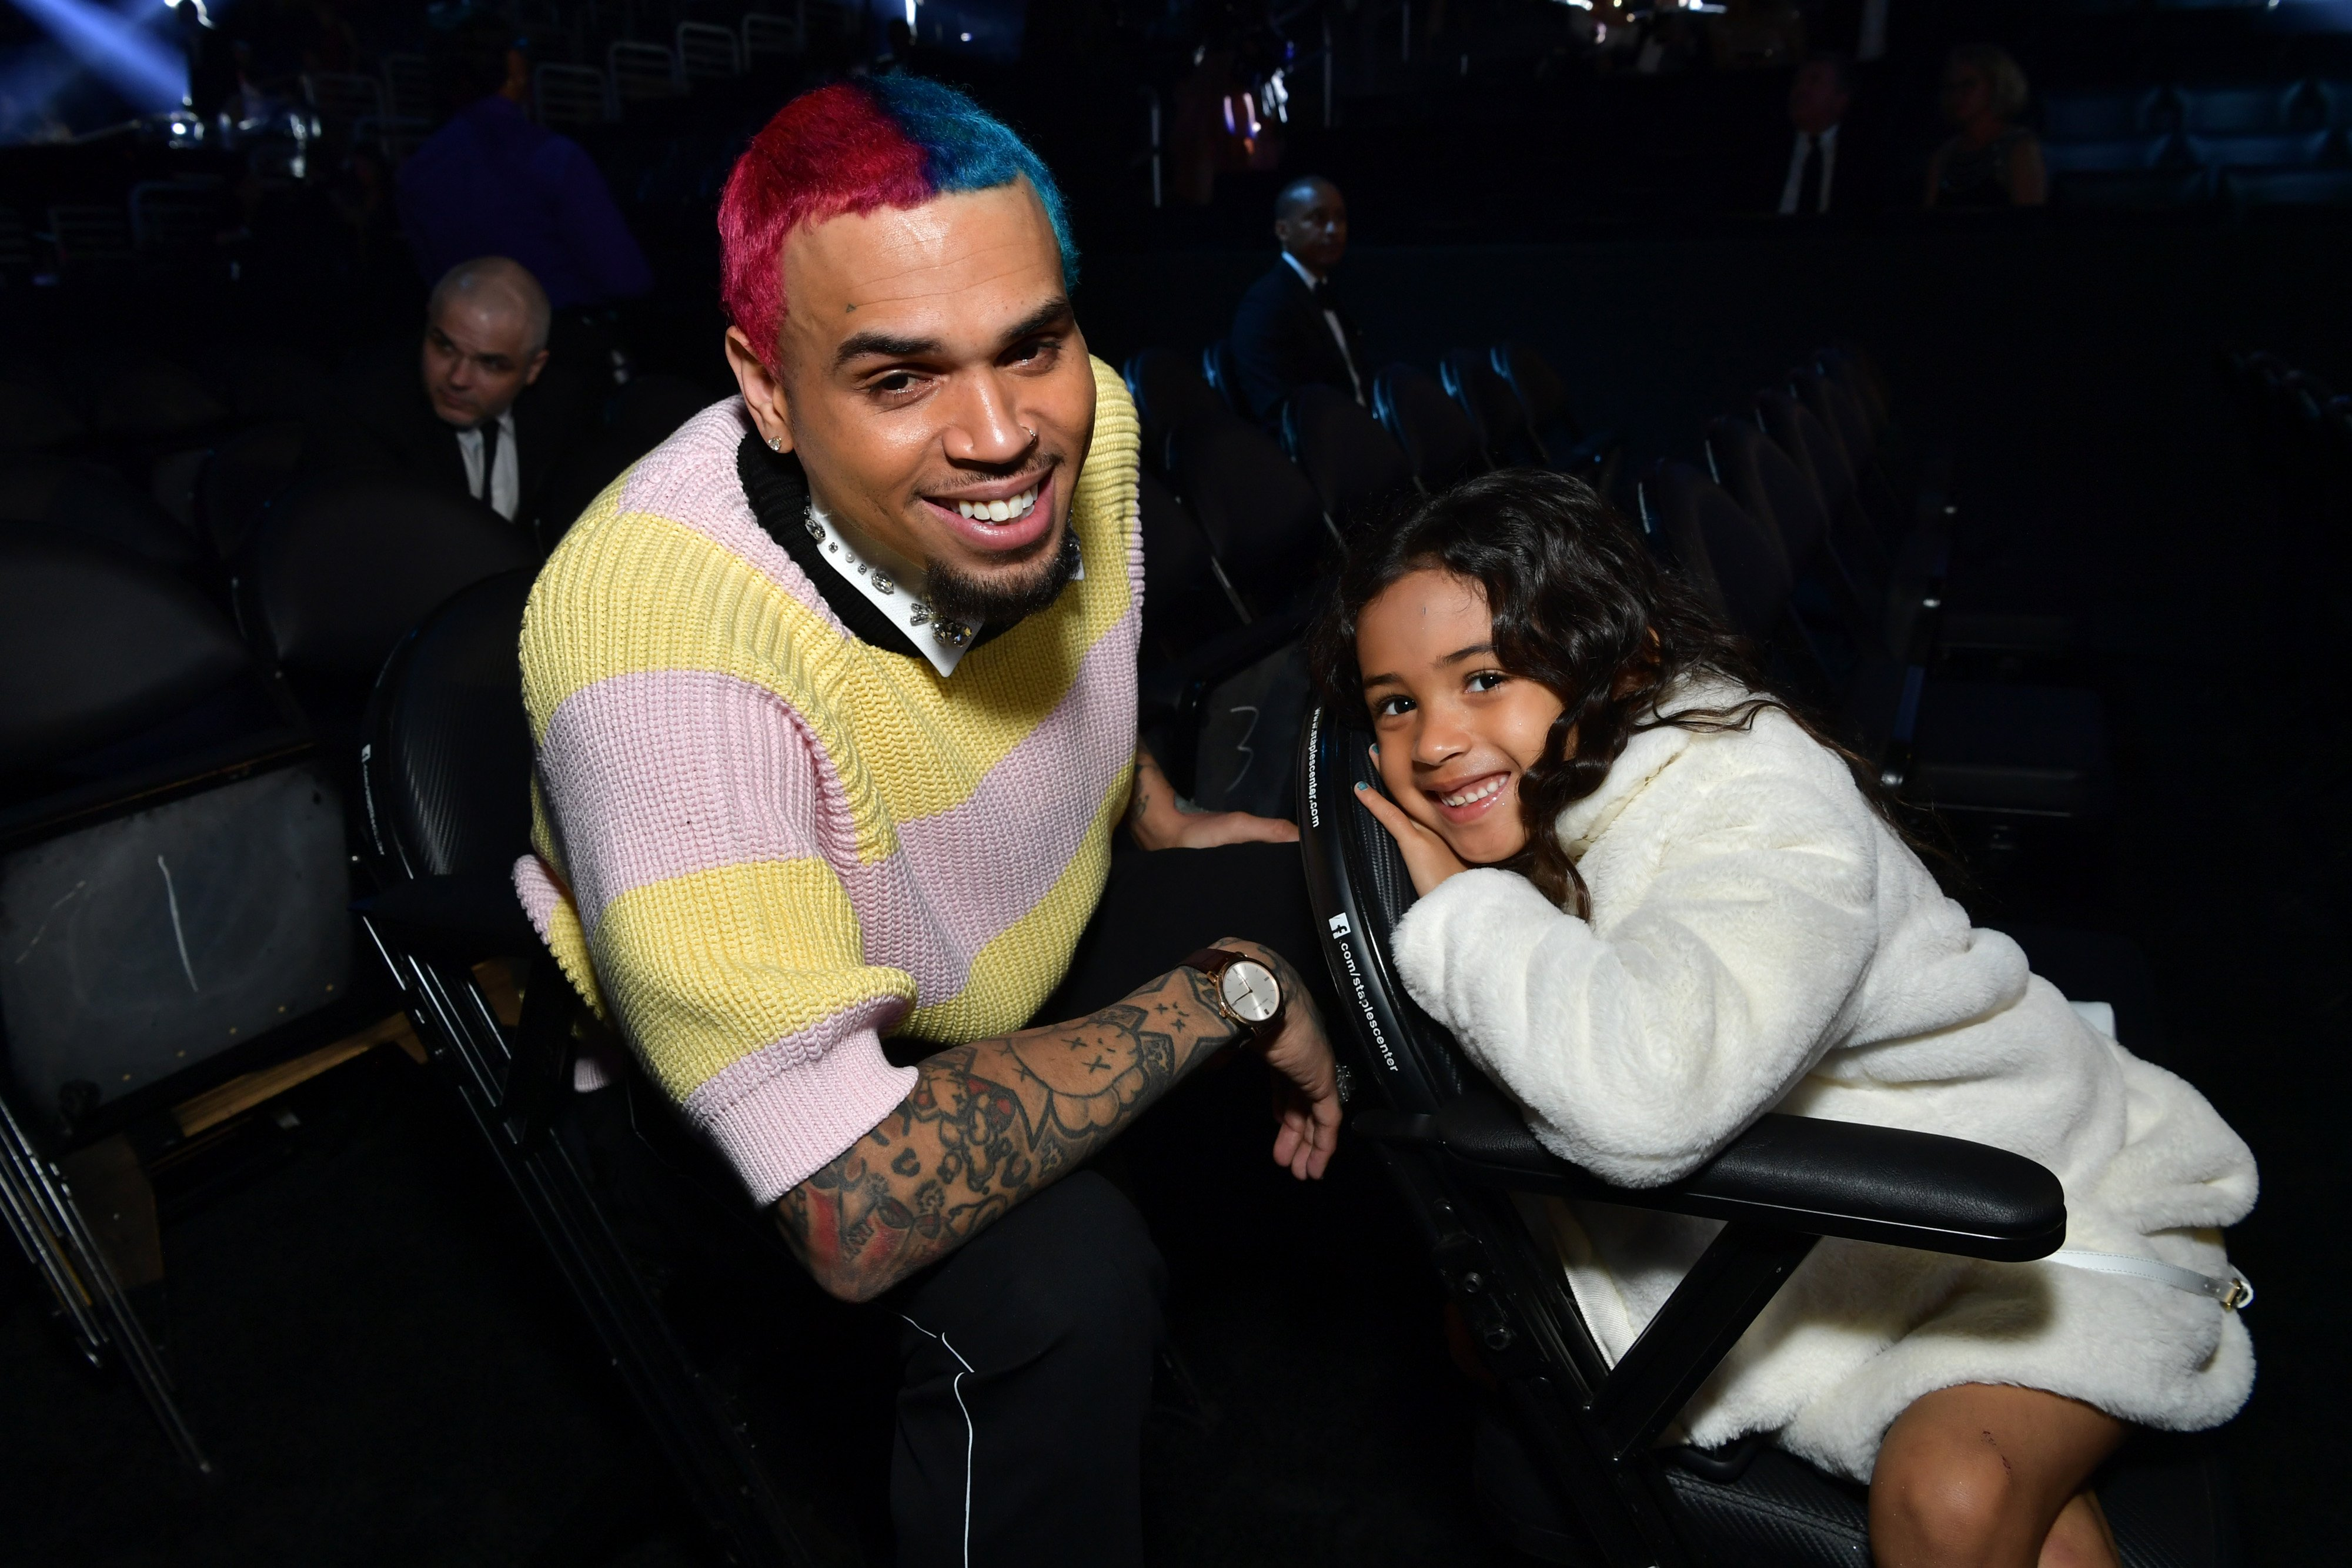 Chris Brown and his daughter, Royalty at the Grammy Awards in January 2020.   Photo: Getty Images